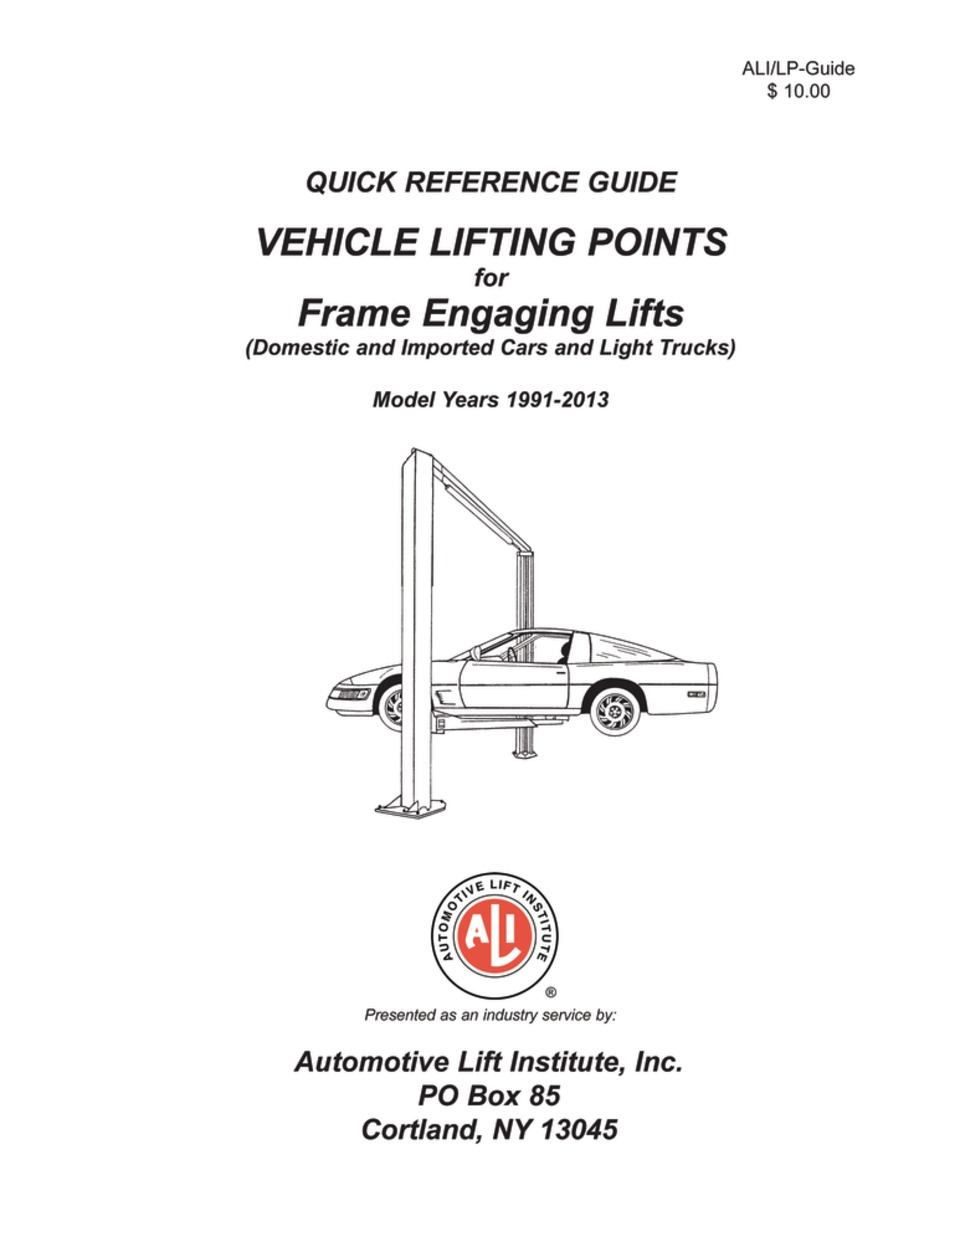 automotive lift institute releases new lift points guide rh vehicleservicepros com Jack Points quick reference guide vehicle lifting points for frame engaging lifts